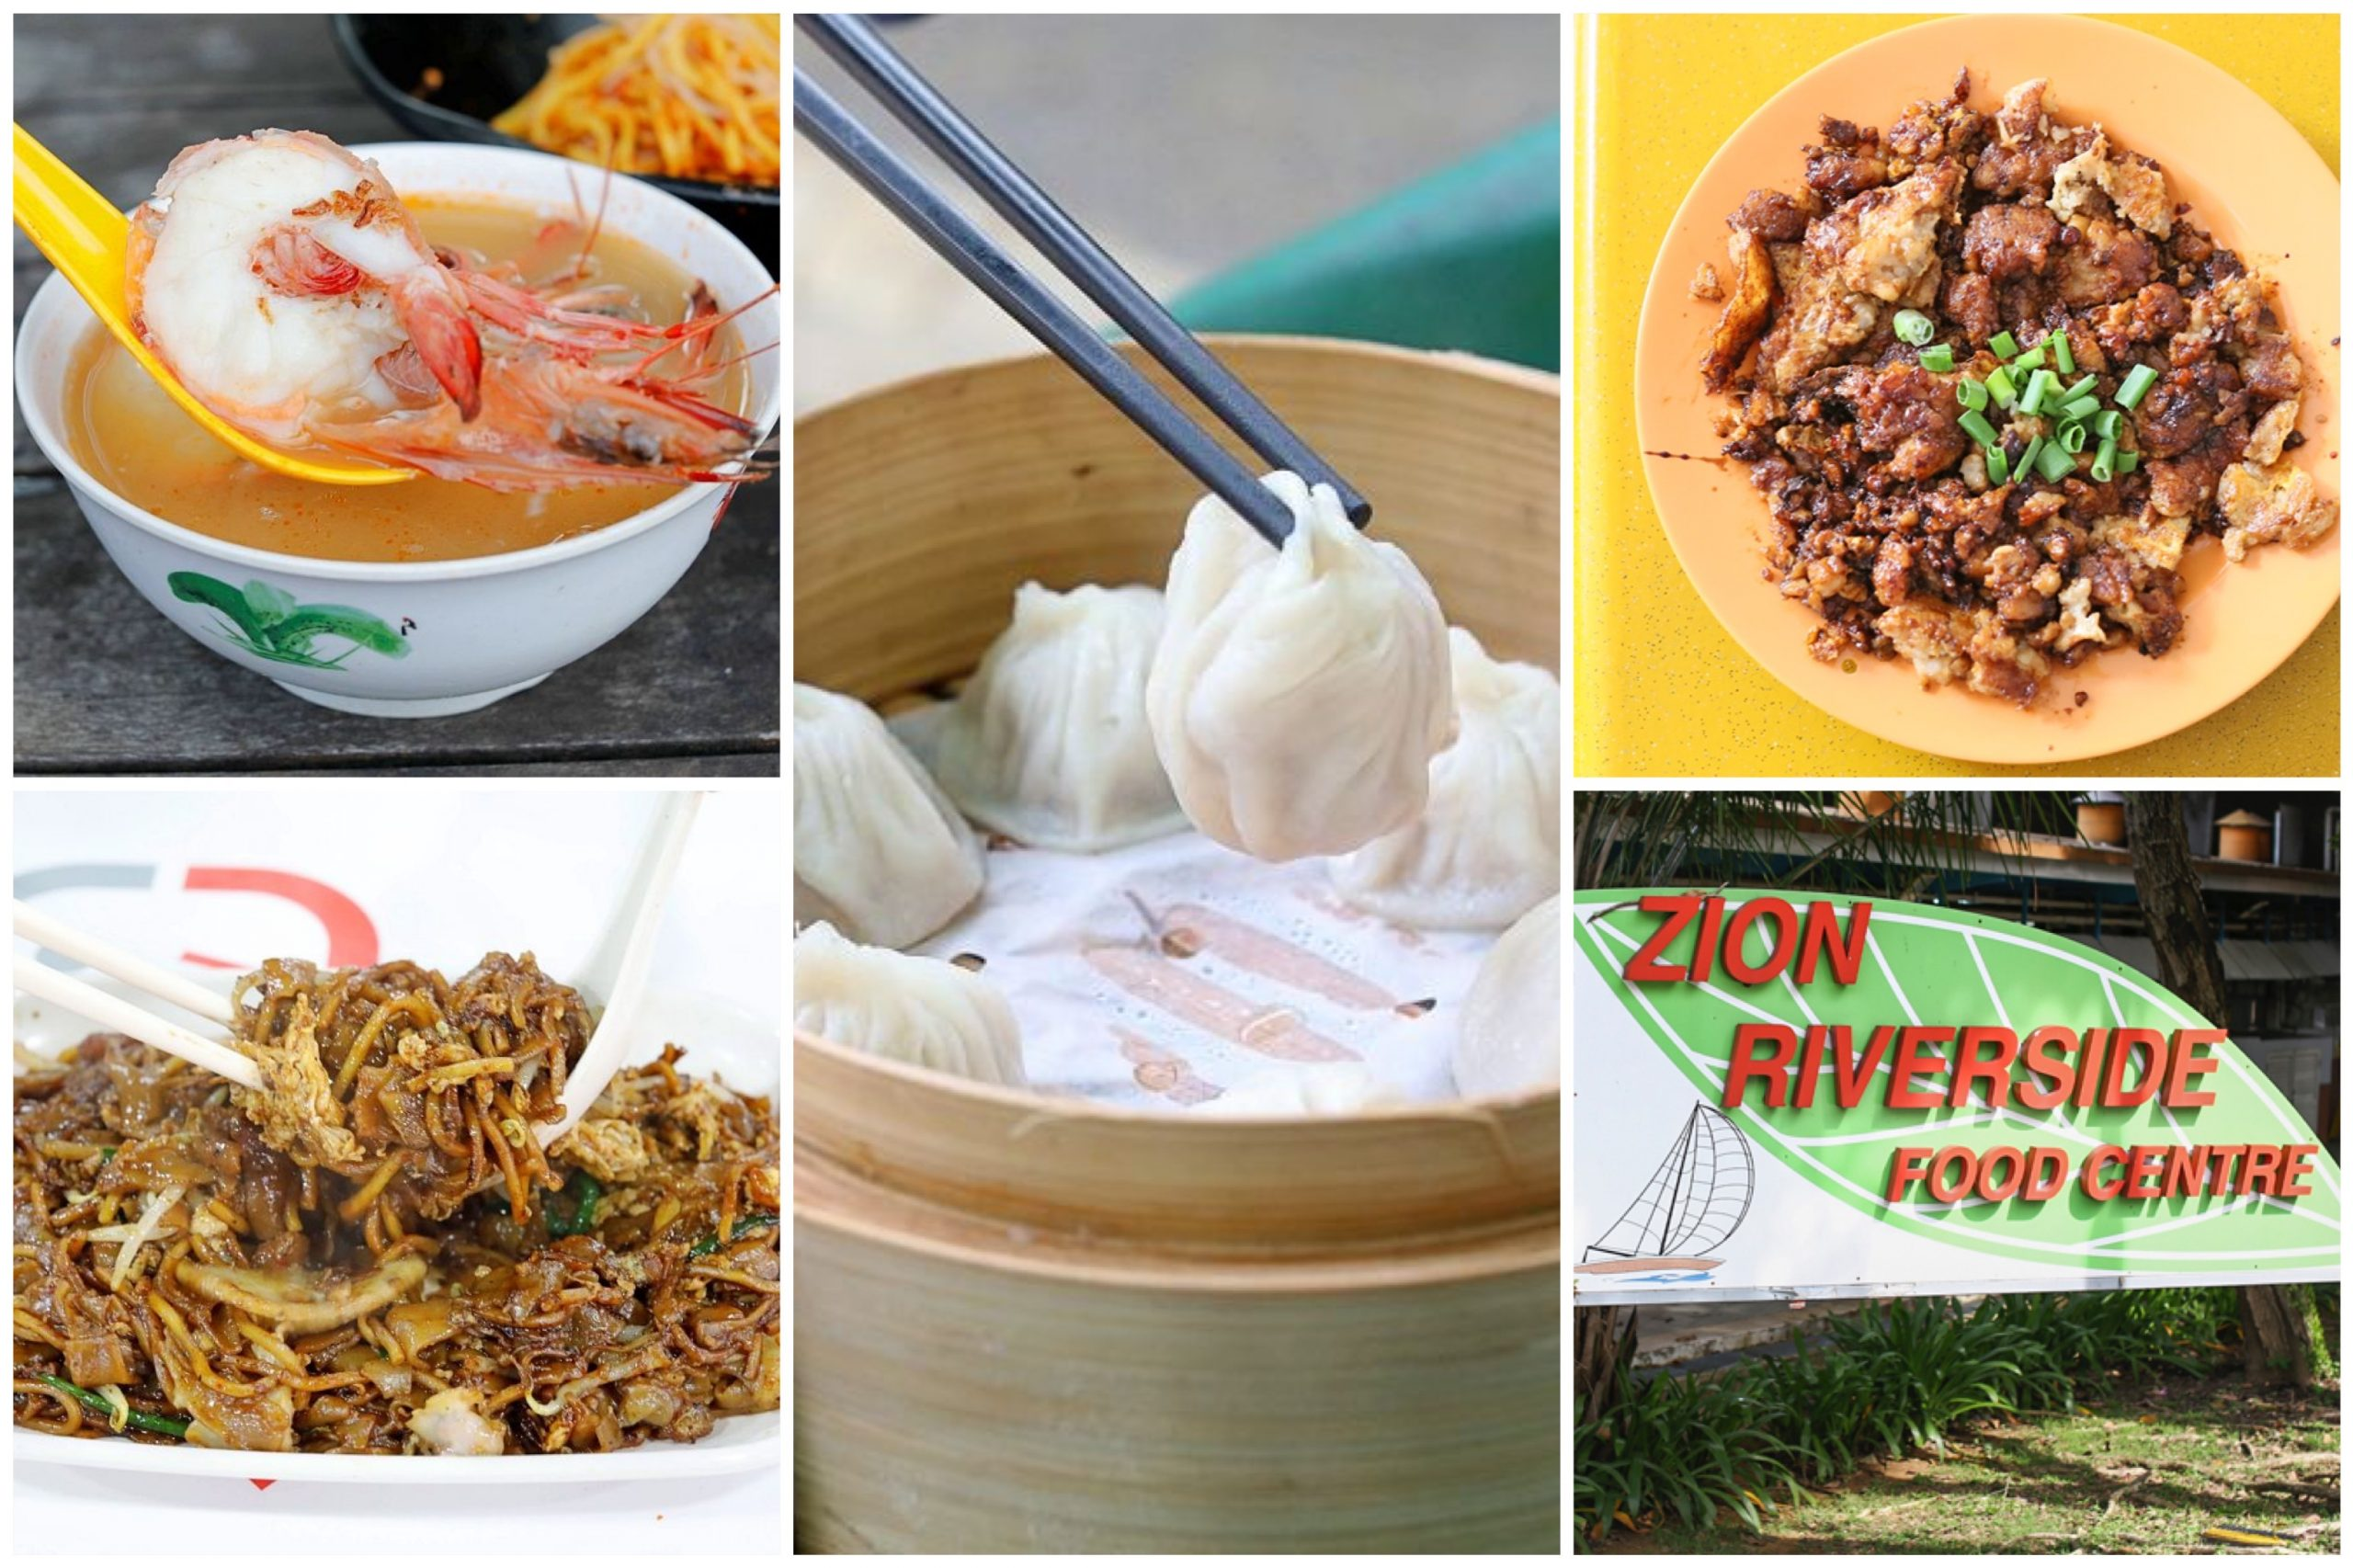 Zion Riverside Food Centre To Close For Renovations From Nov 2020 To Feb 2021 Here Are 10 Stalls To Try Danielfooddiary Com